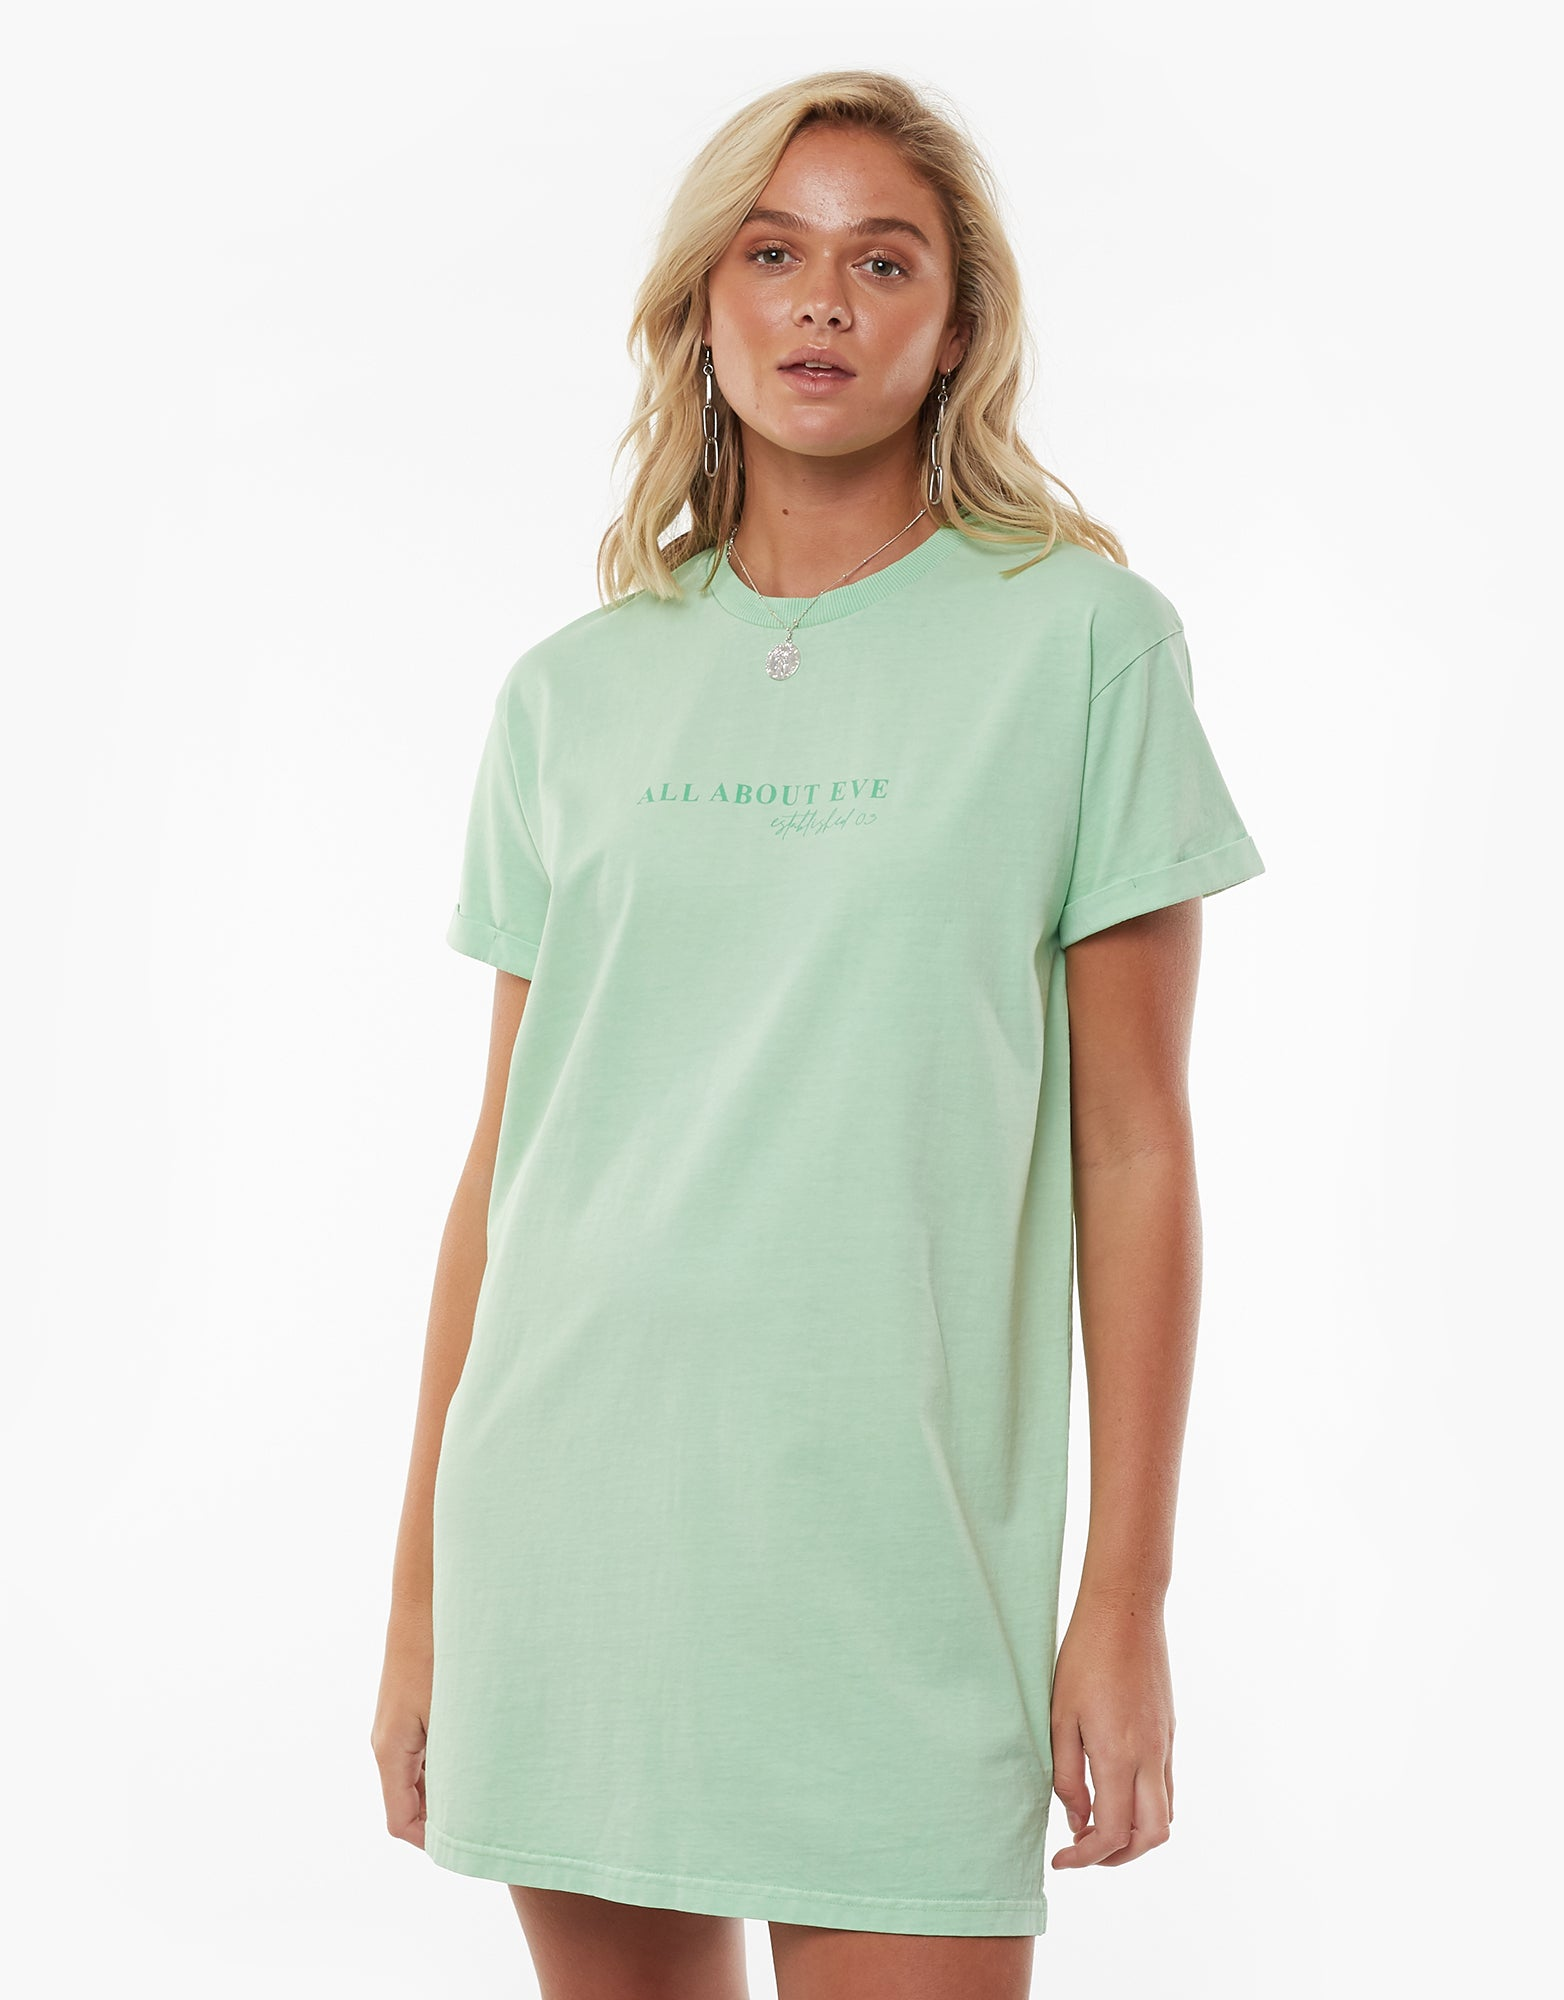 All About Eve Clothing ALL ABOUT EVE WASHED TEE DRESS - MINT